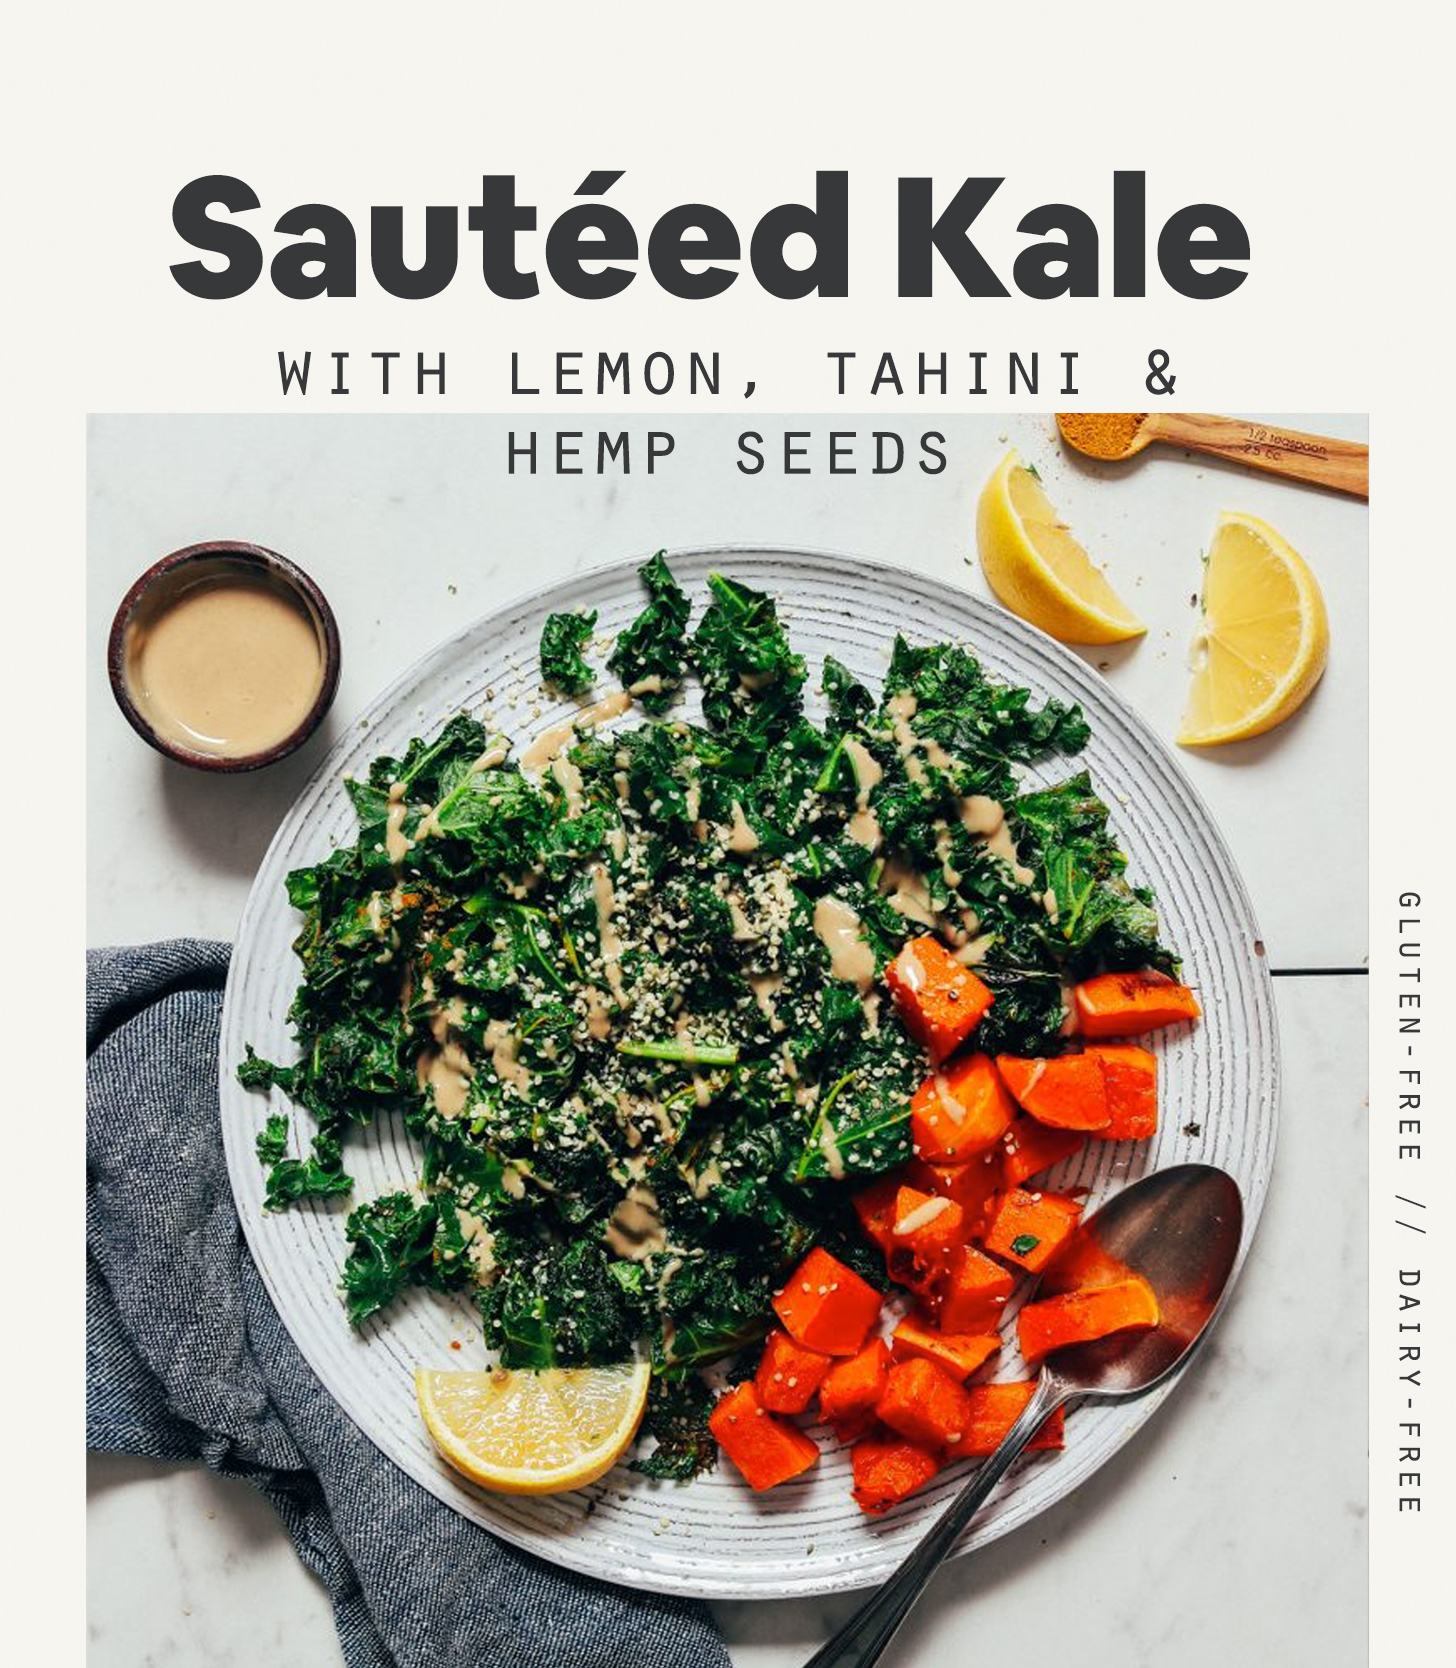 Large plate of sweet potatoes and sautéed kale topped with hemp seeds, lemon, and tahini sauce